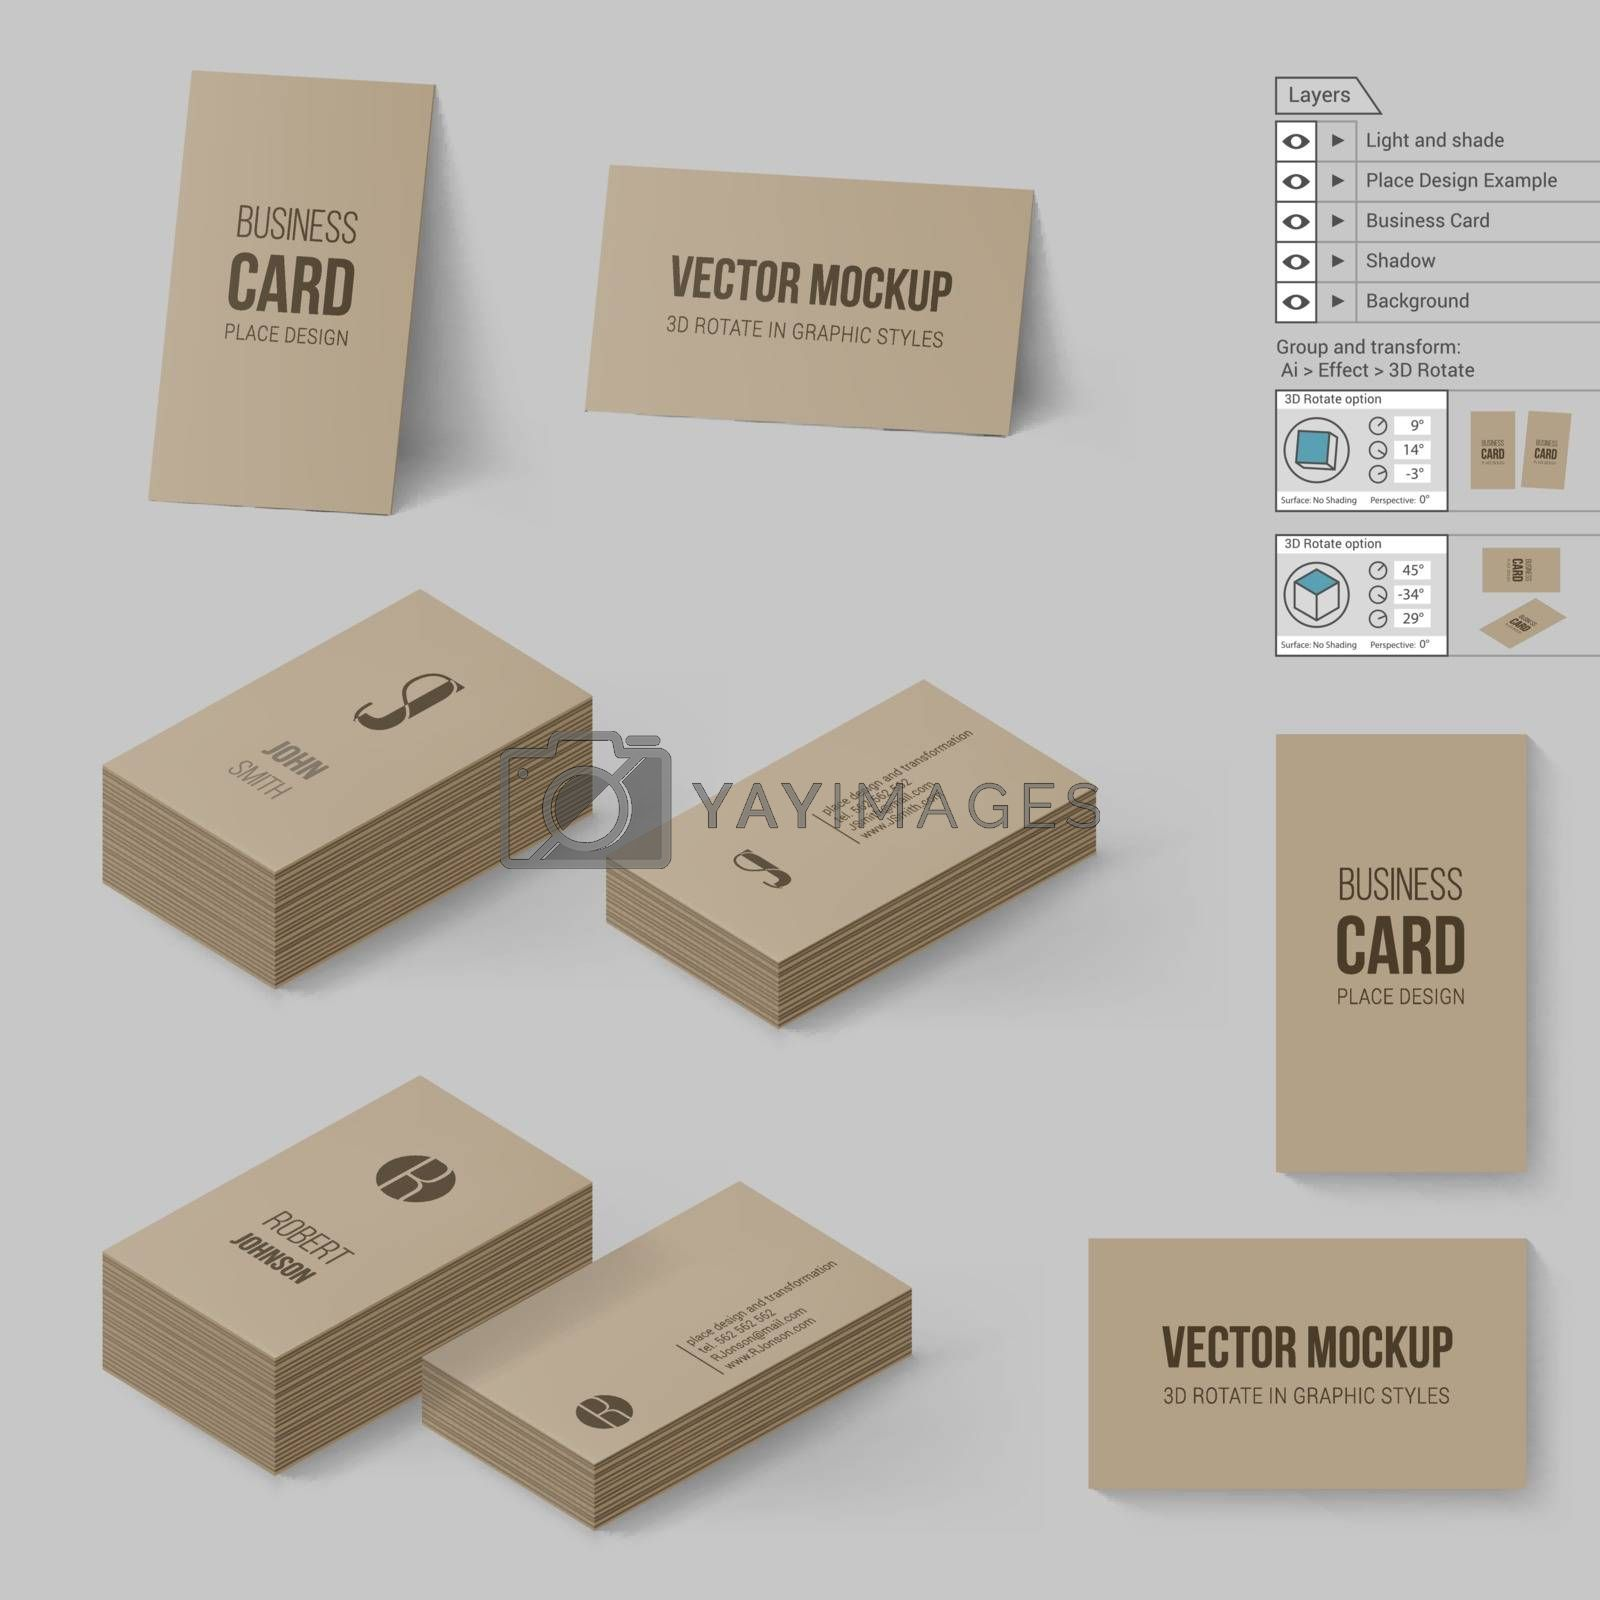 Brown Business Cards Template. Corporate Identity. Branding Mock Up with 3D Rotate Options